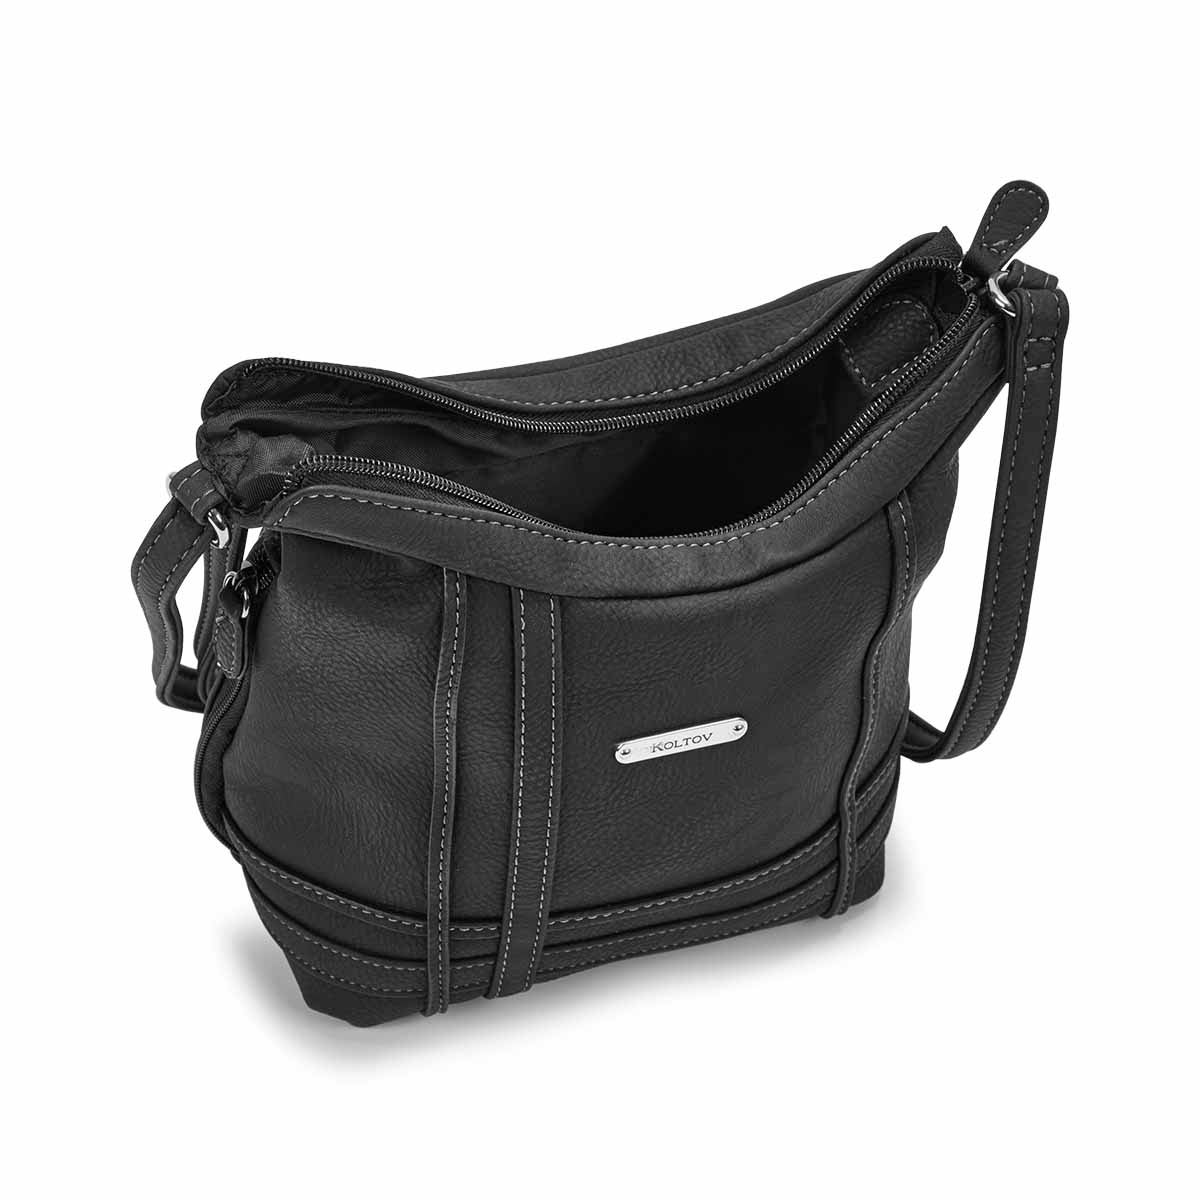 Lds Georgia Mini black cross body bag